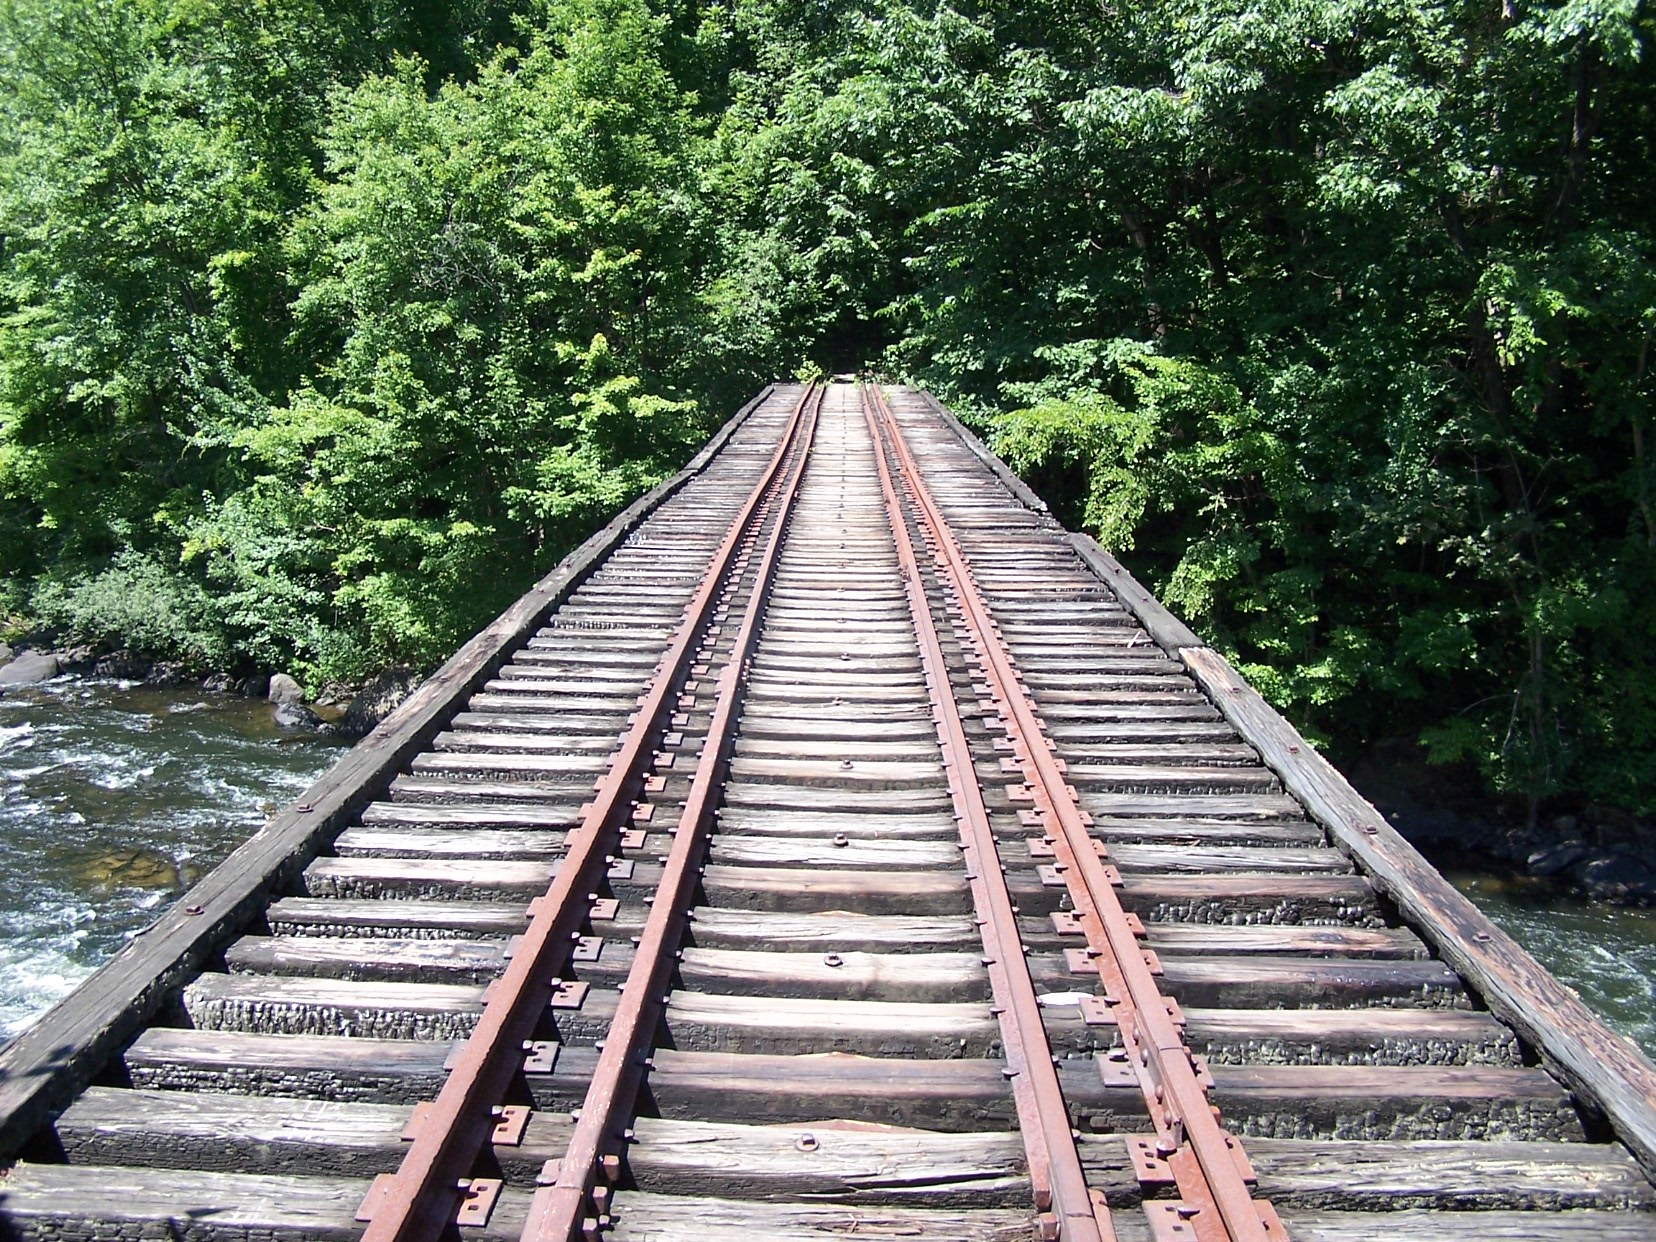 Notice: Upcoming Railroad Abandonment in Merrimack County, New Hampshire